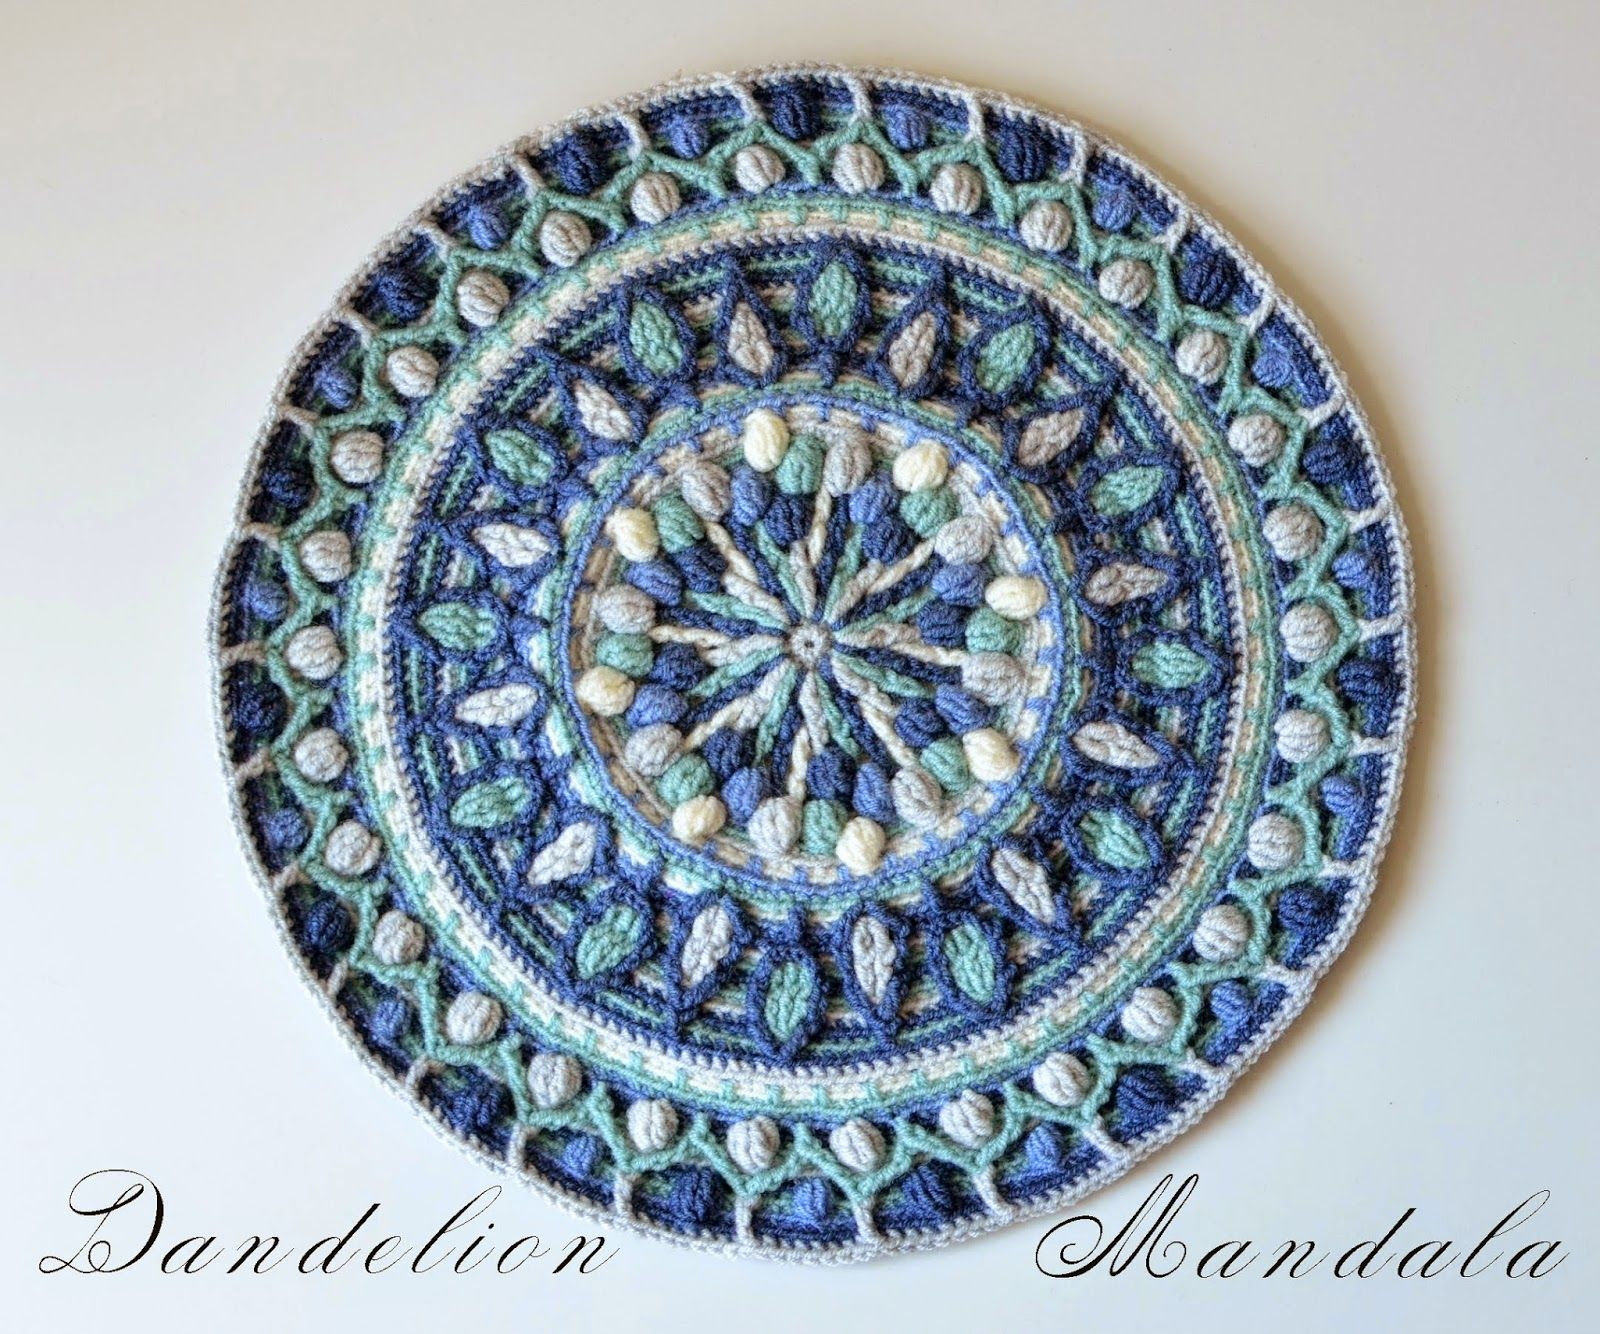 This Crocheted Dandelion Mandala Is Made In Overlay